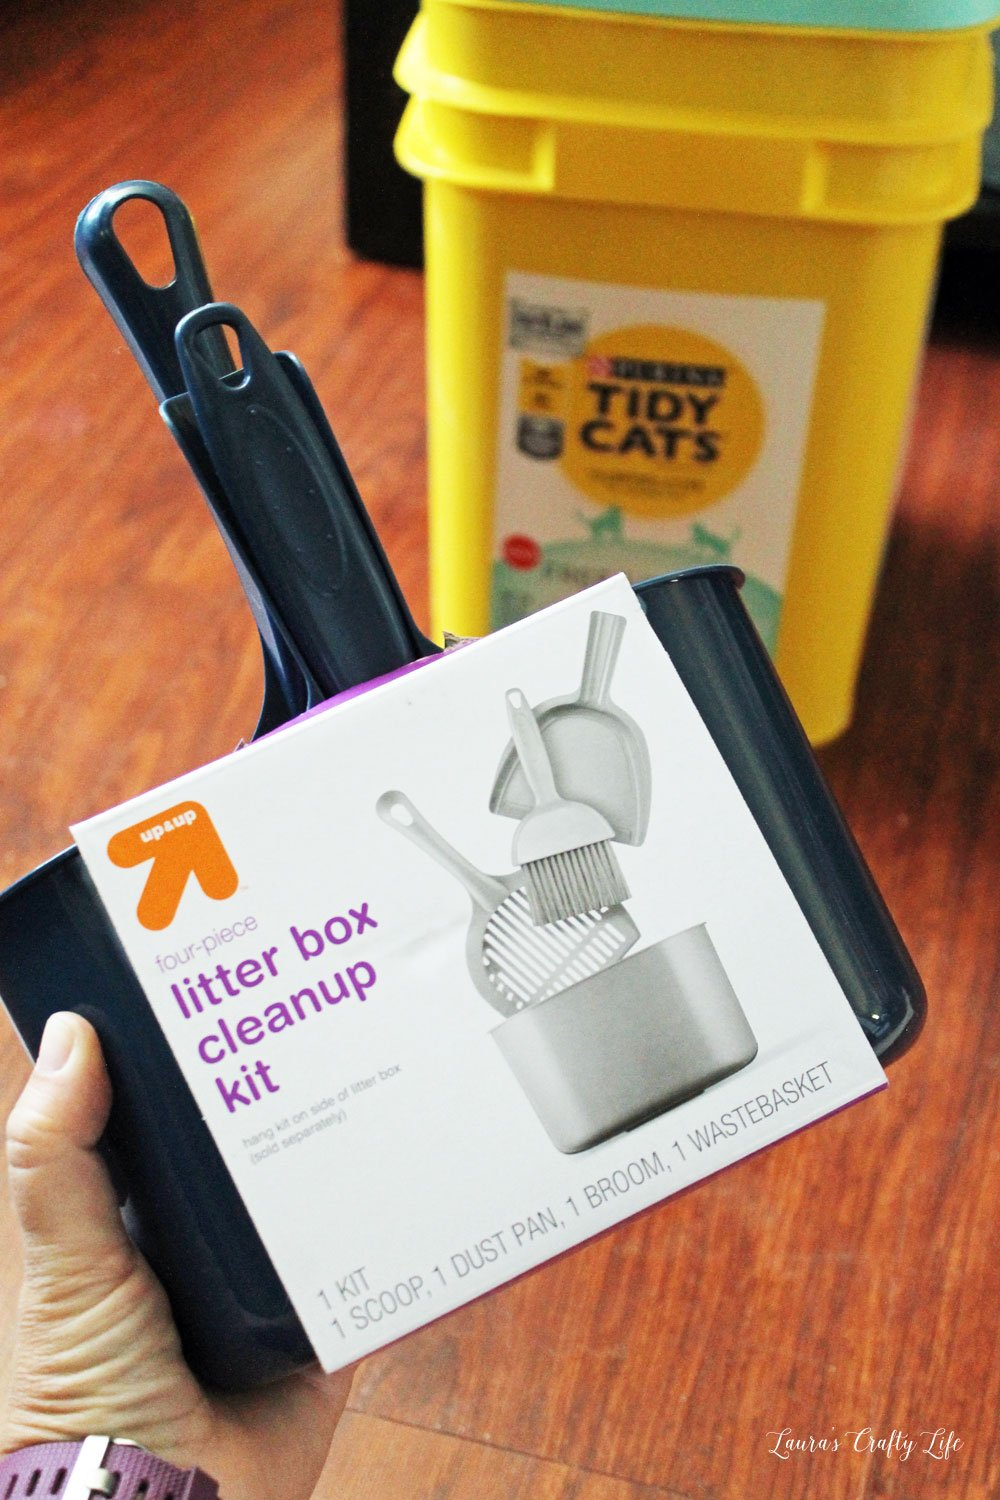 Litter box cleanup kit from Target #shop